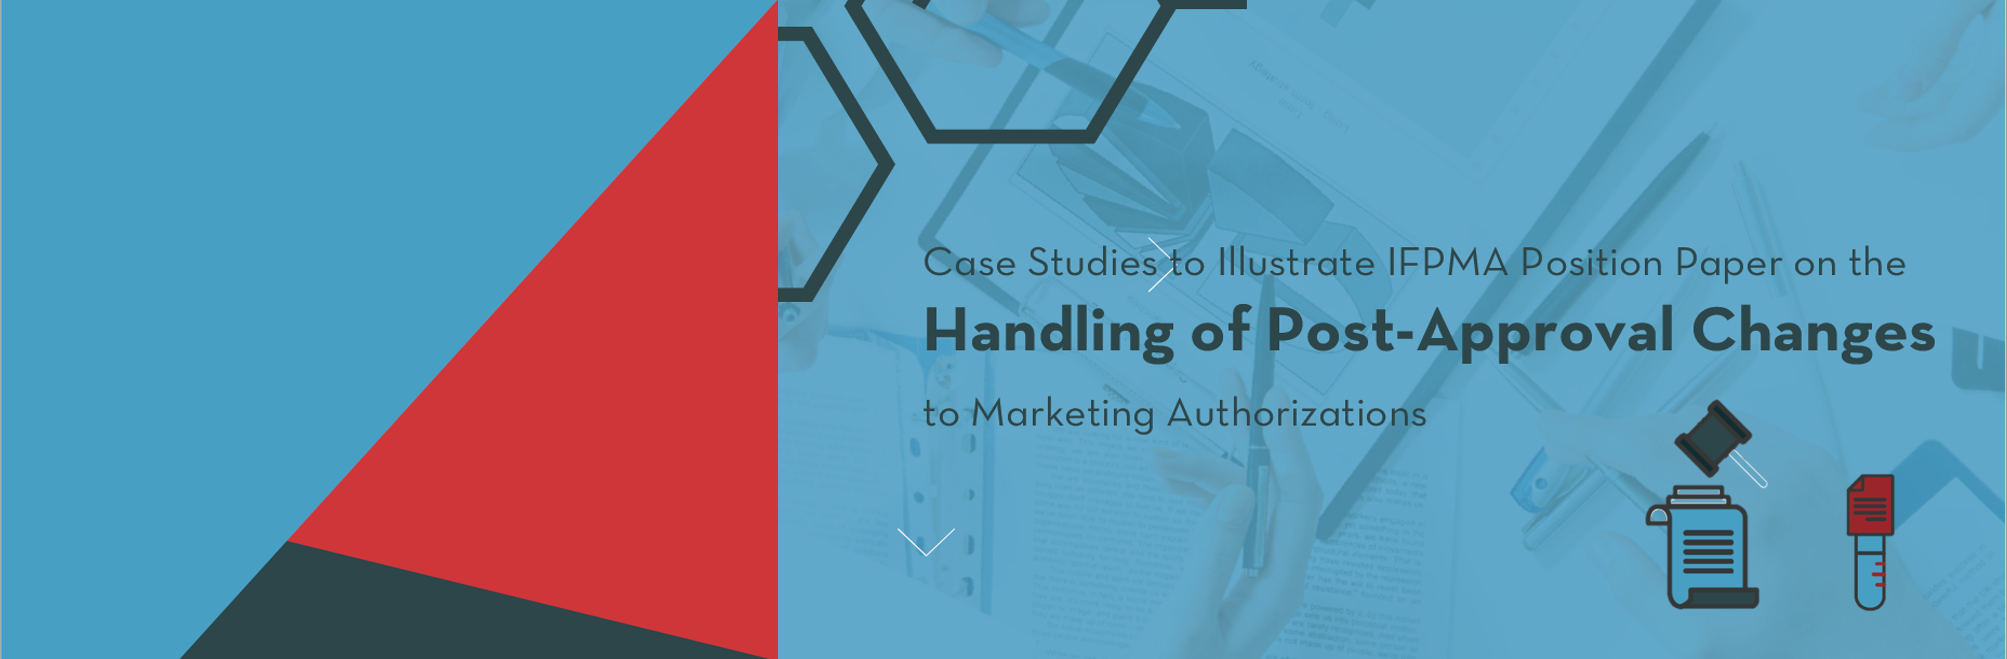 Handling of Post-Approval Changes to Marketing Authorizations